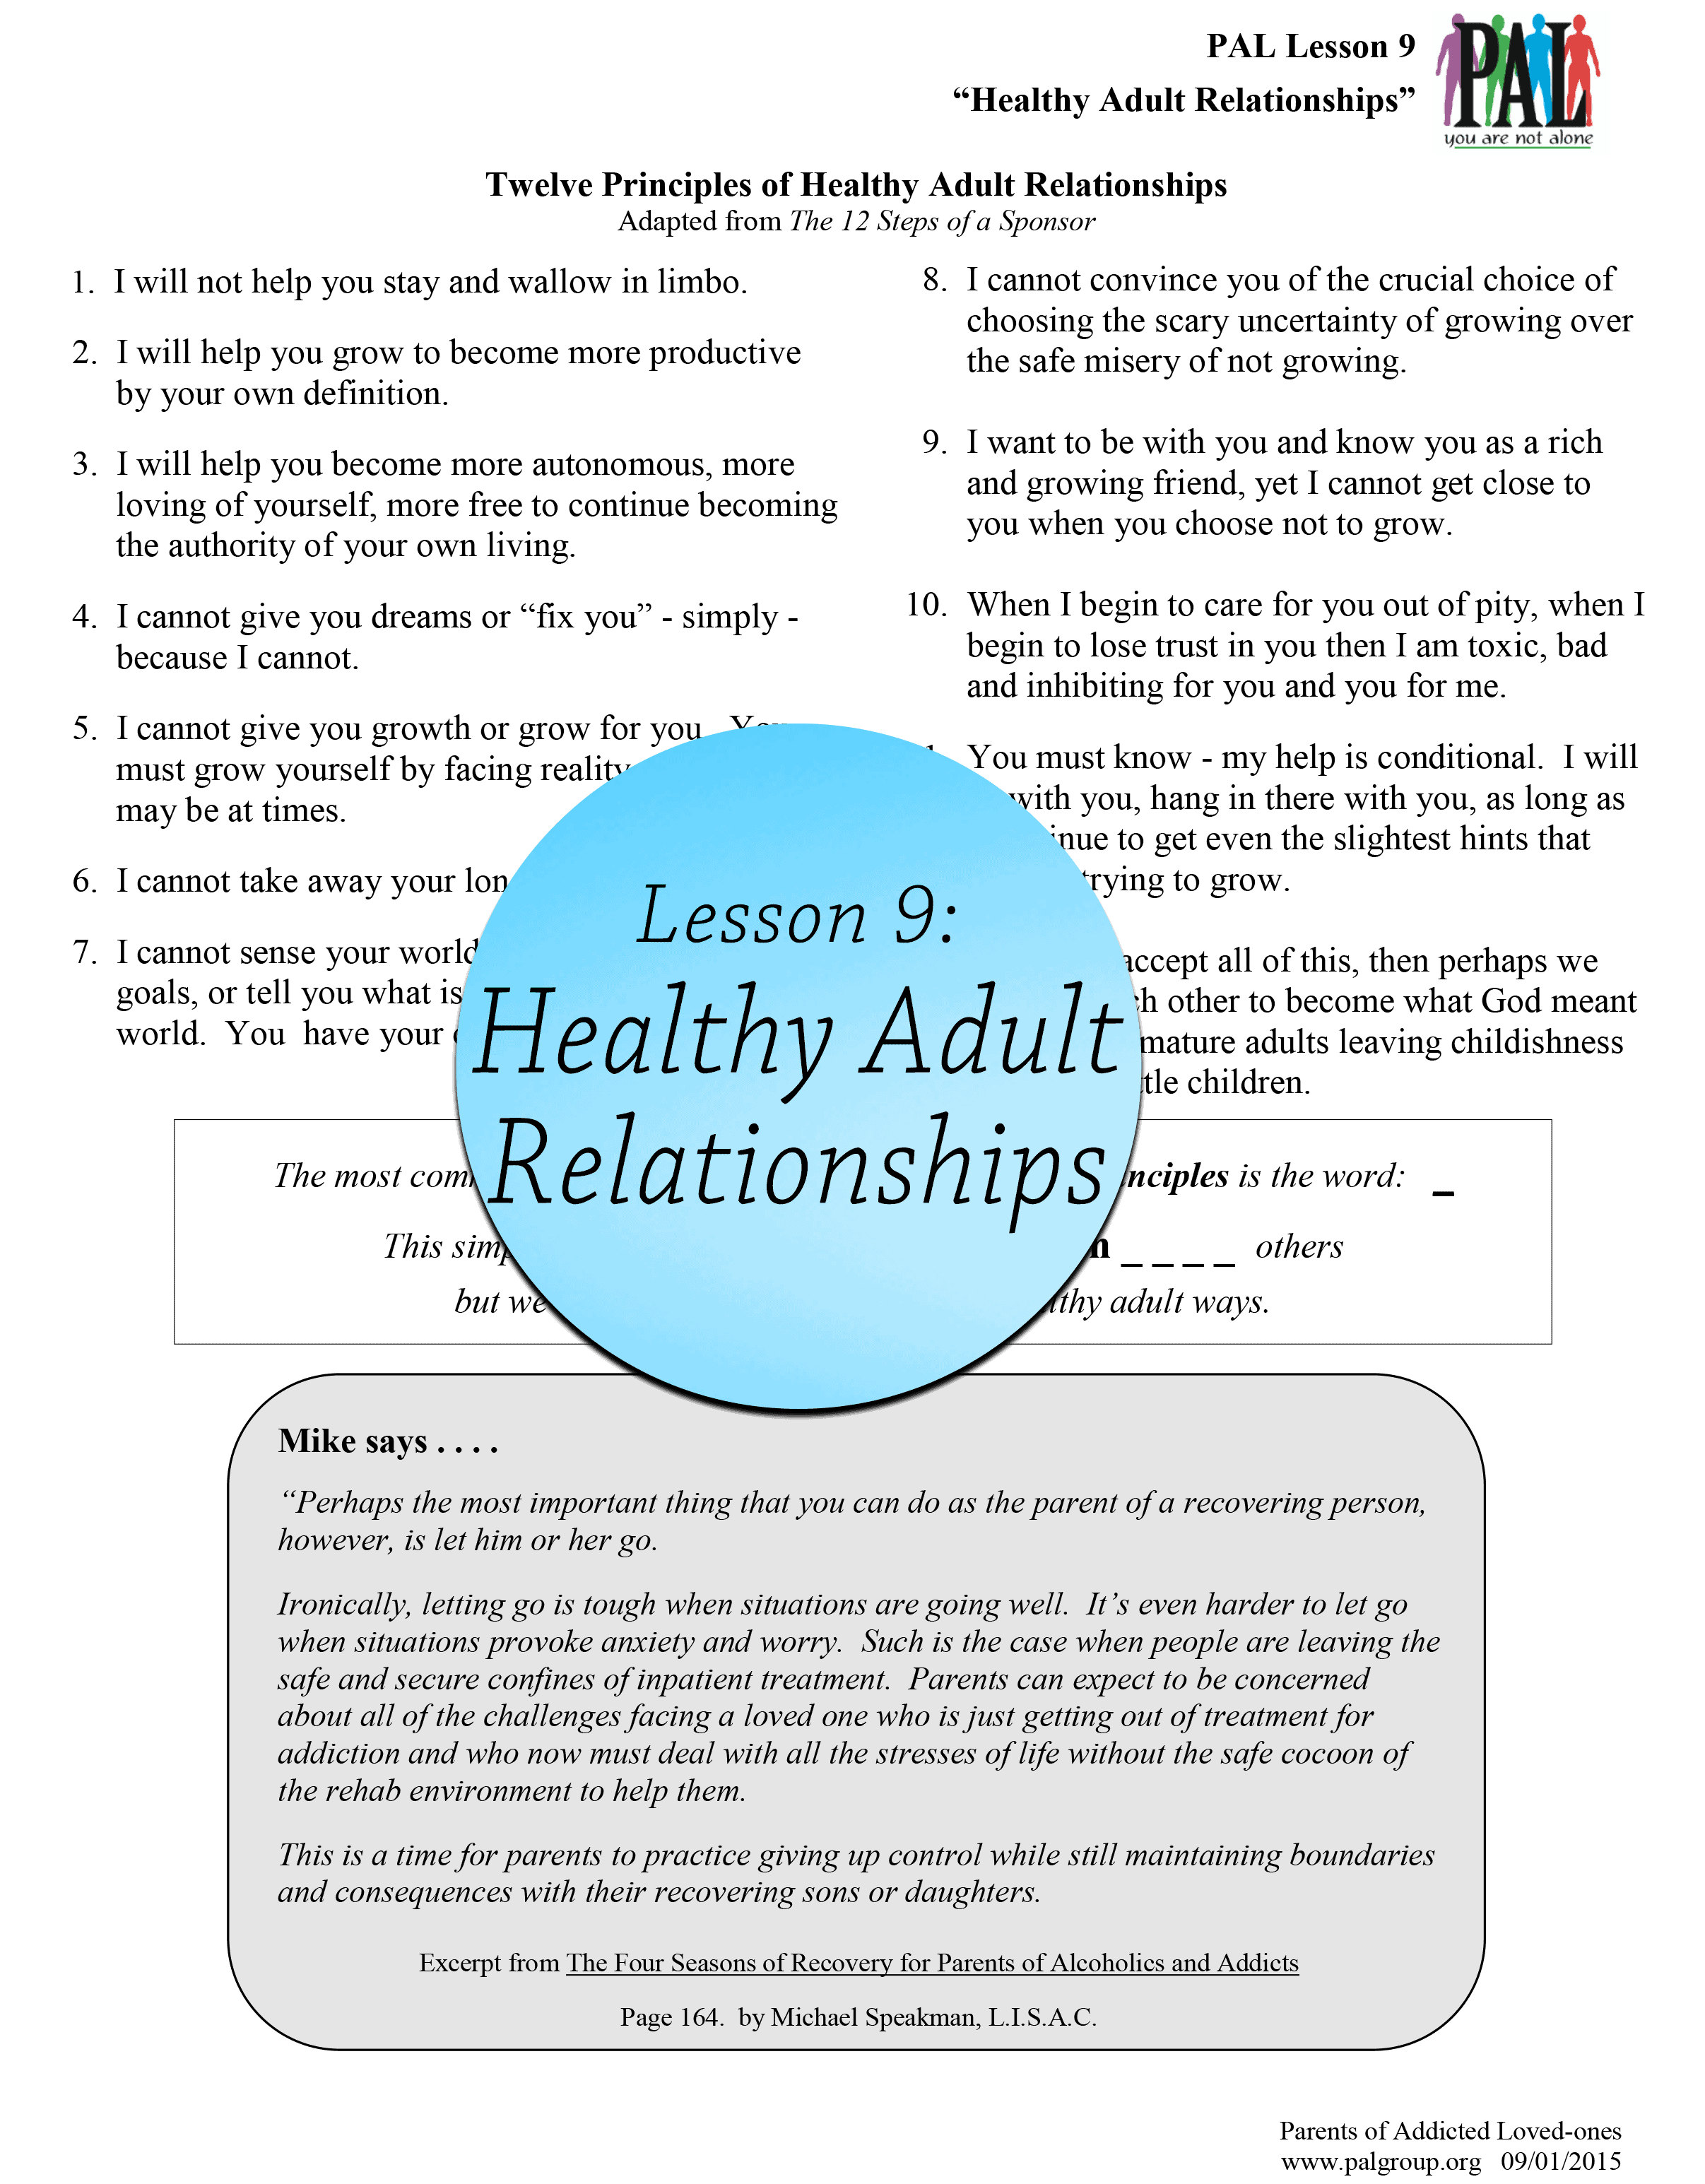 Lesson 9: Healthy Adult Relationships